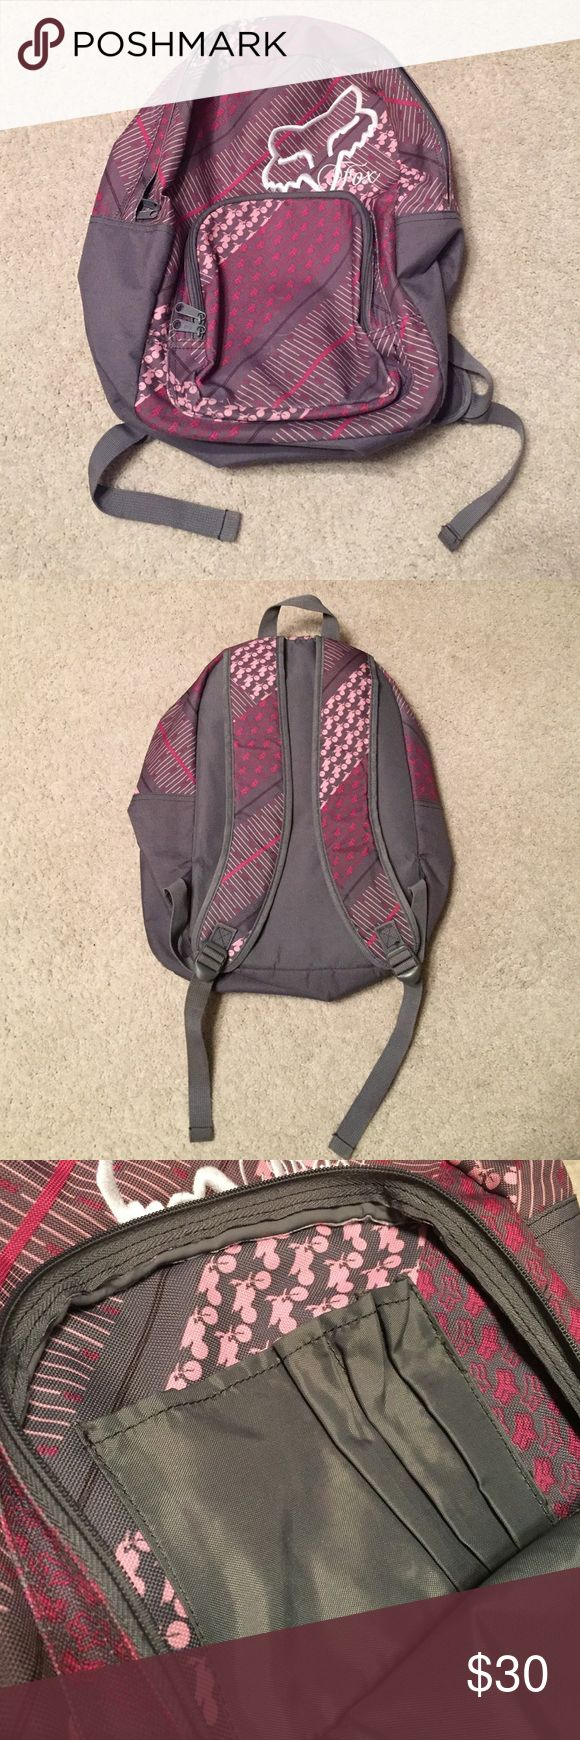 Fox Riders backpack Excellent condition! No signs of wear or tear. Very lightly used. Great for middle/high school girls! Grey on back, sides and lining. Printed on front and straps. Slots for pencils, pens, etc. in front pocket! Very roomy and stylish! No trades Fox Racing Bags Backpacks